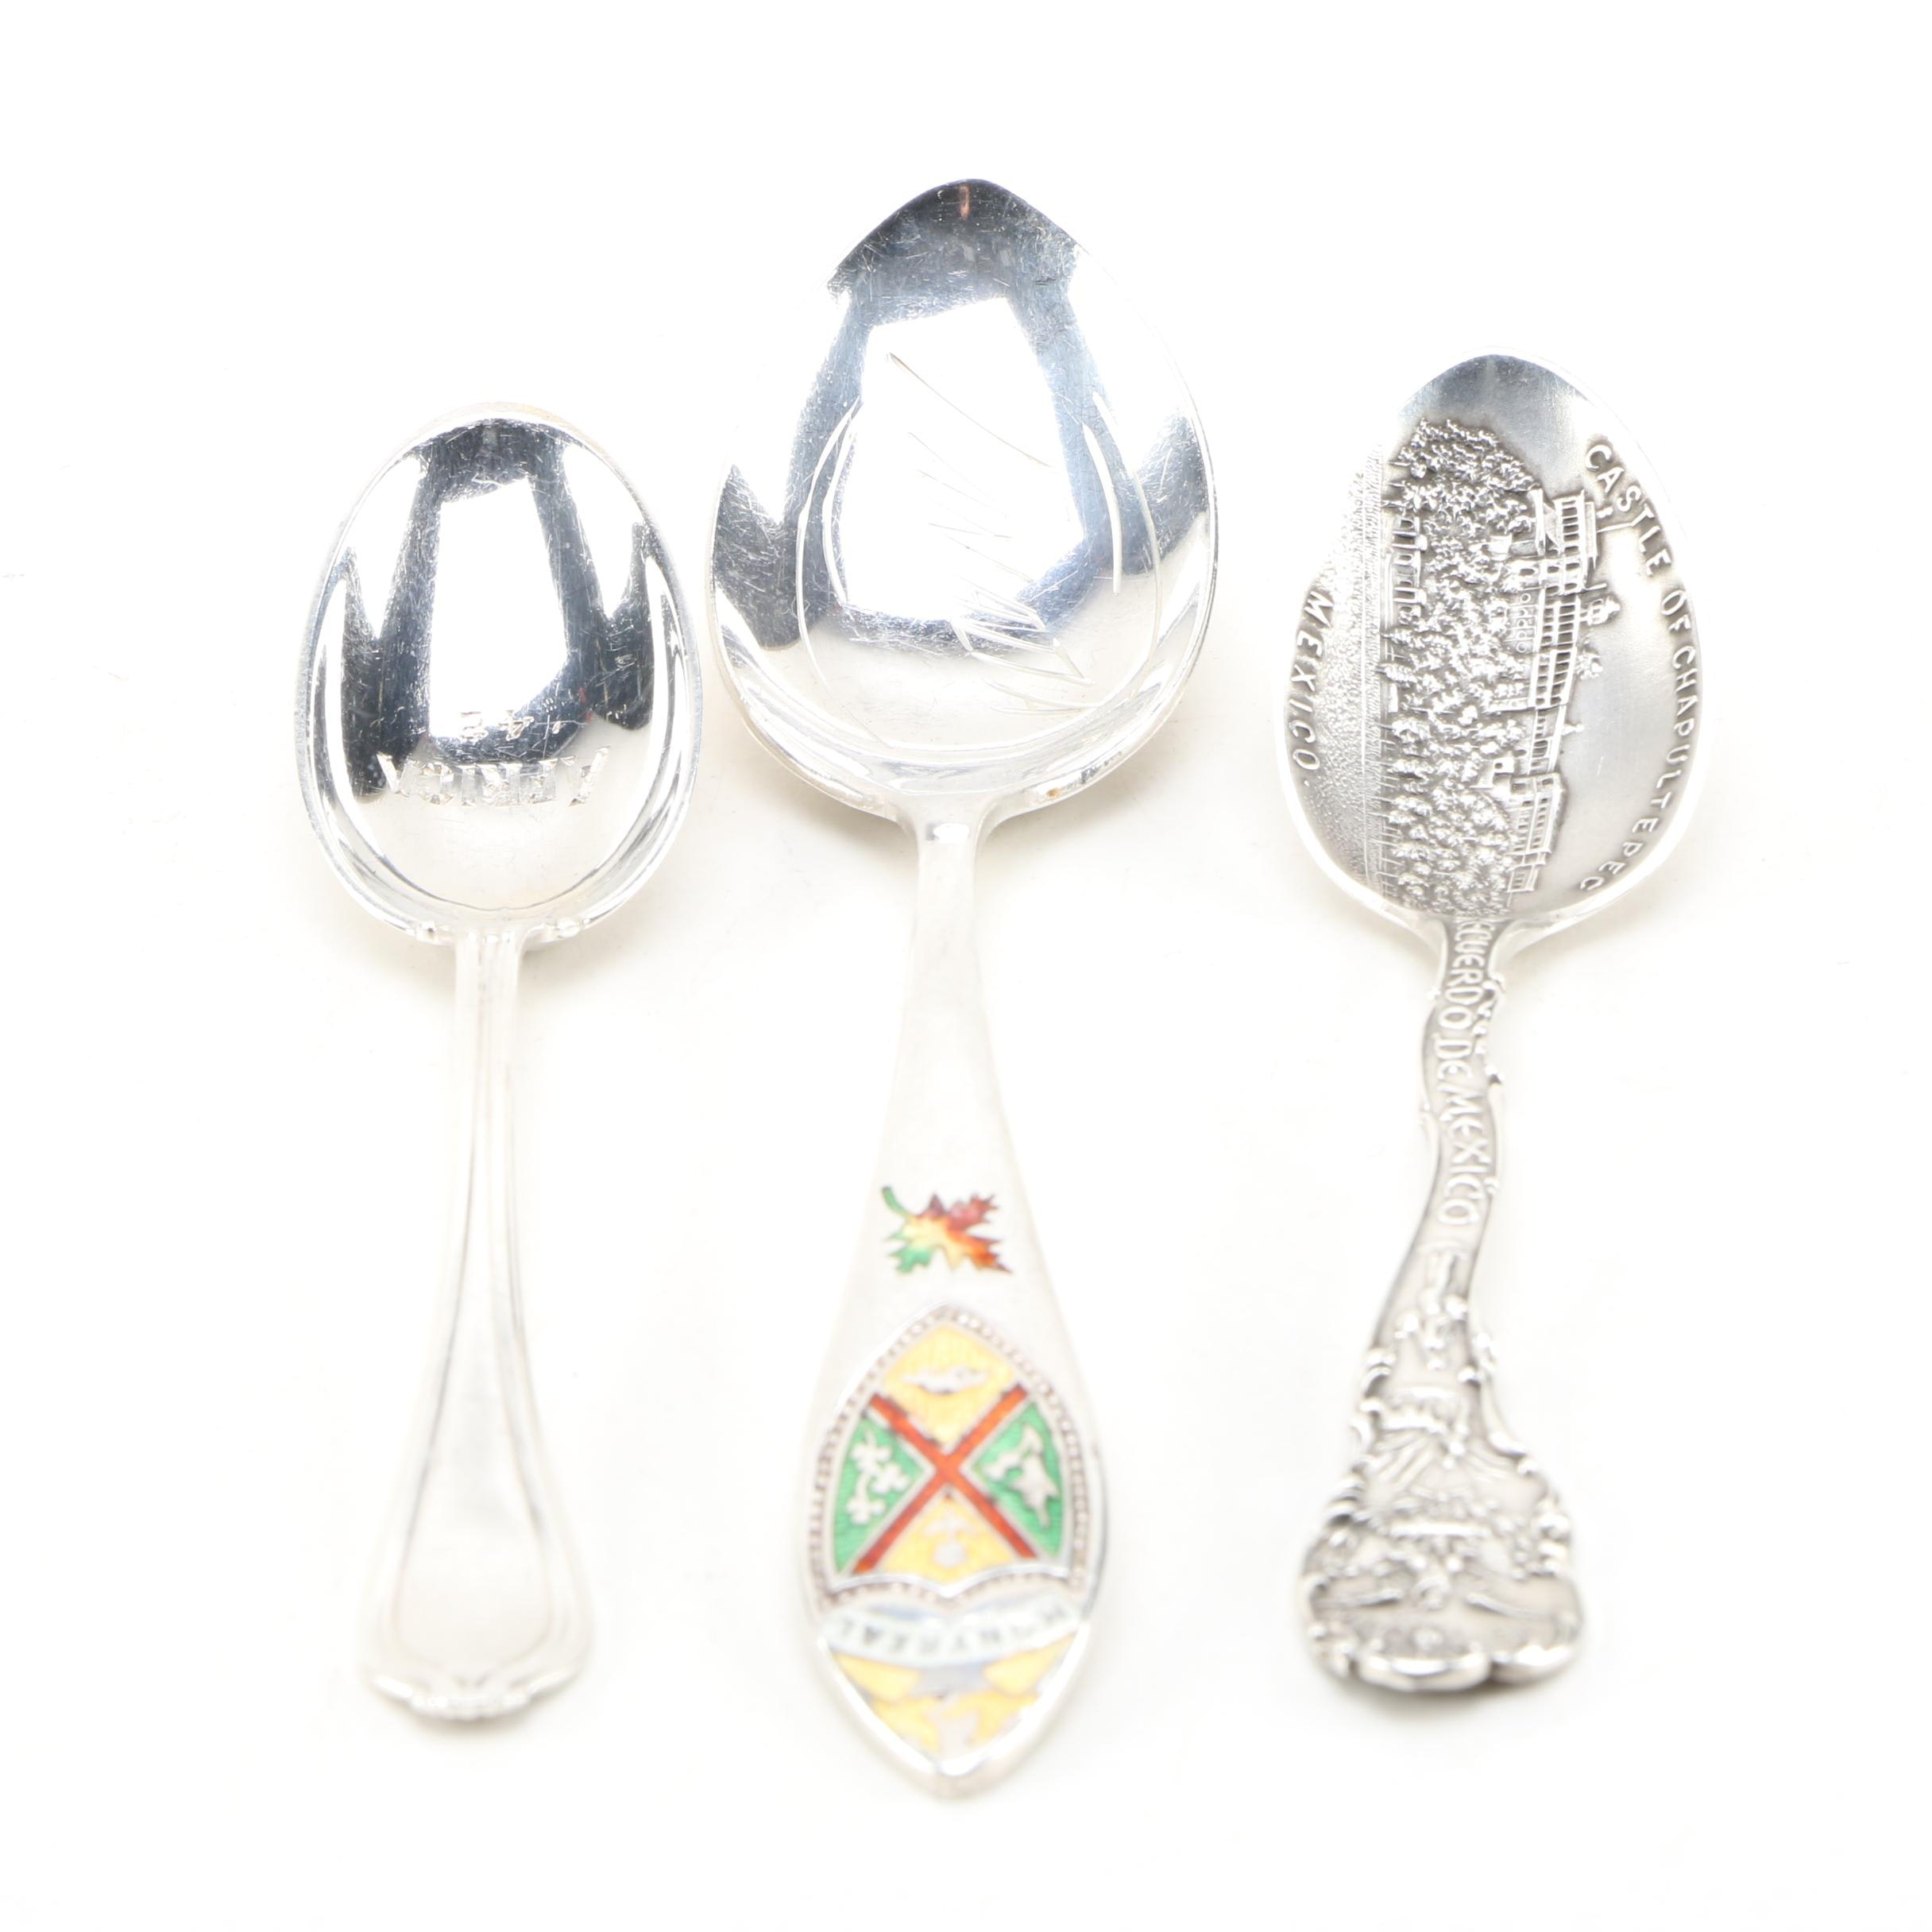 Shepard Manufacturing Co. and Other Sterling Silver Souvenir Spoons